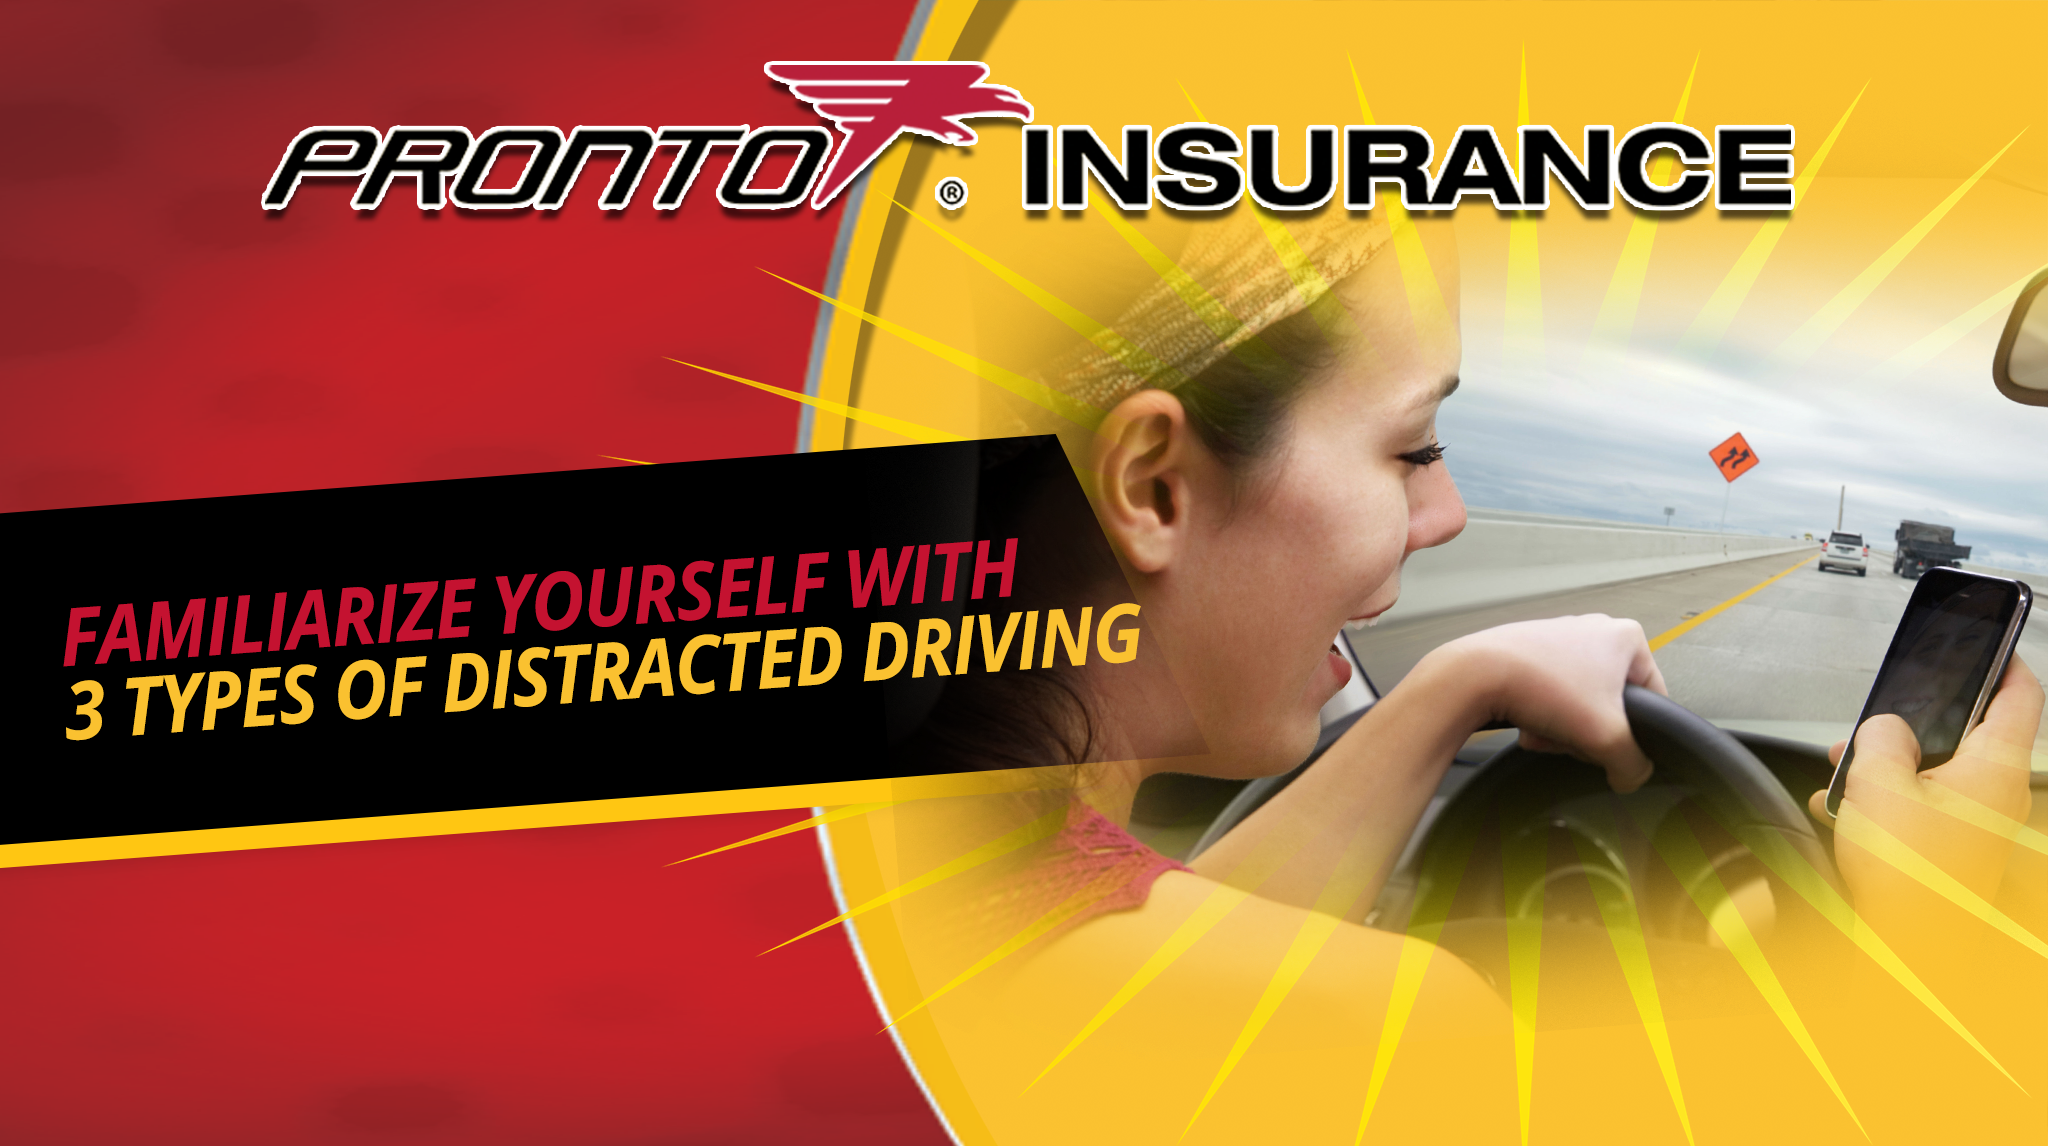 Familiarize Yourself with 3 Types of Distracted Driving